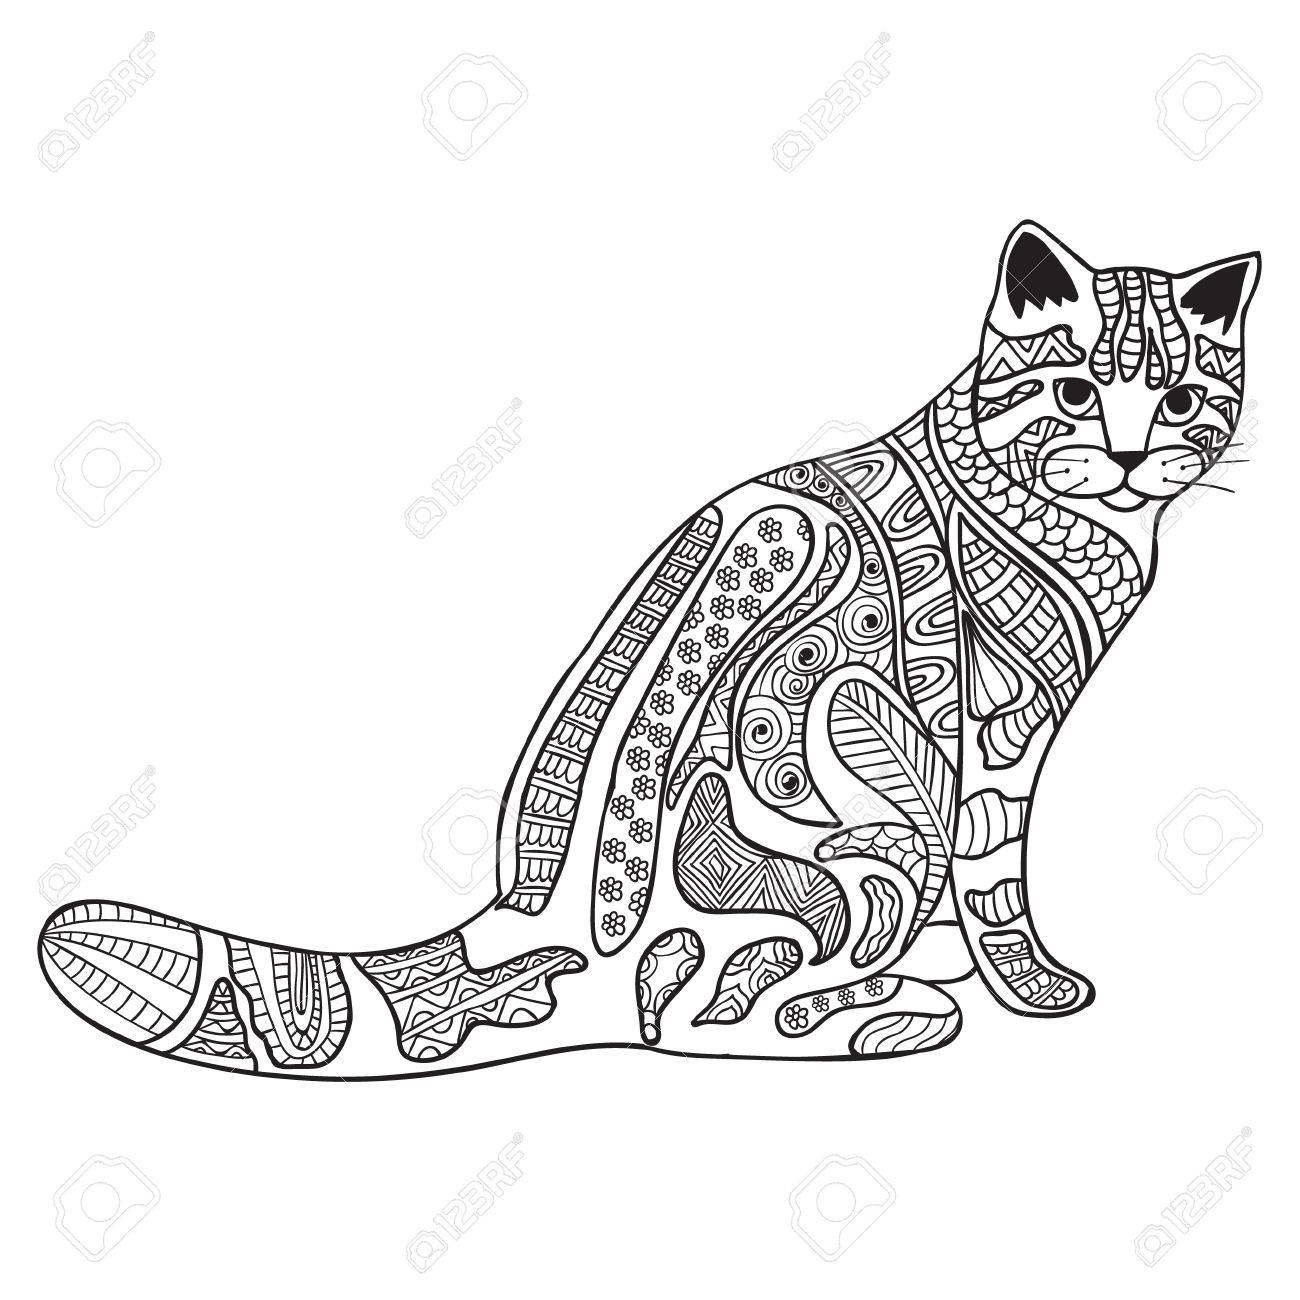 Cat Anti Stress Coloring Book For Adults Black And White Hand Drawn Vector